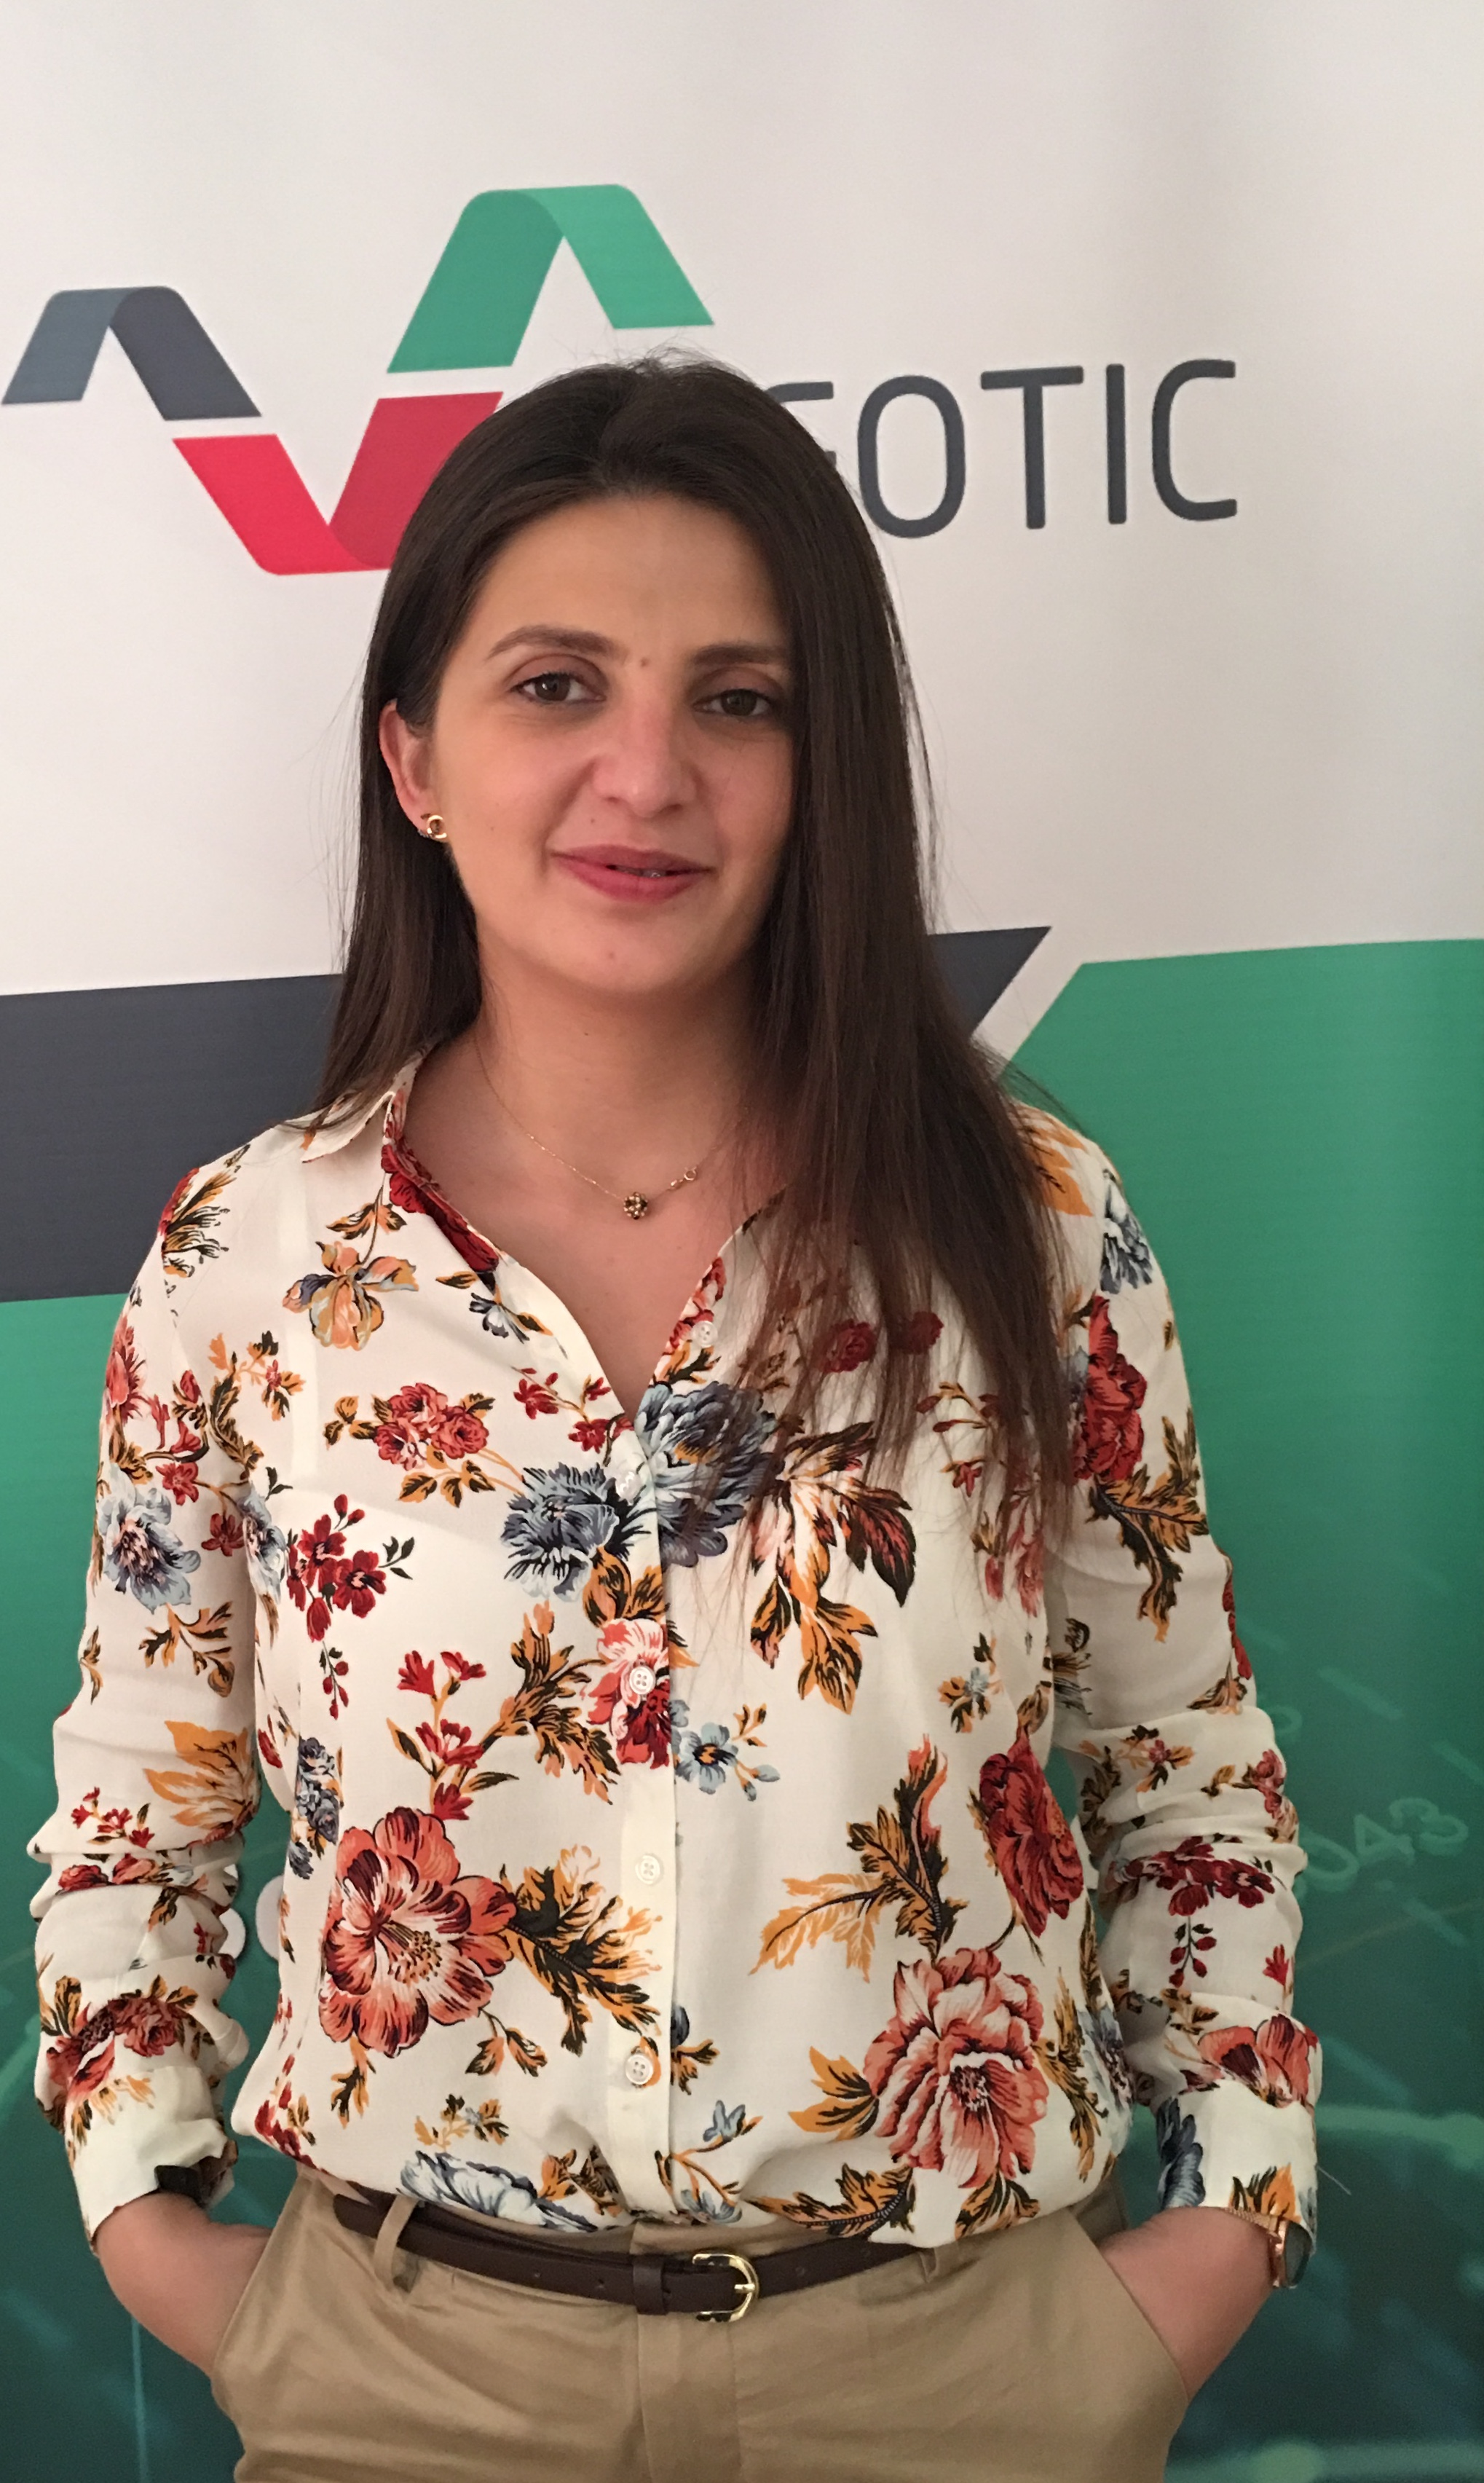 Mira Abboud, CTO and data scientist at Neotic.ai